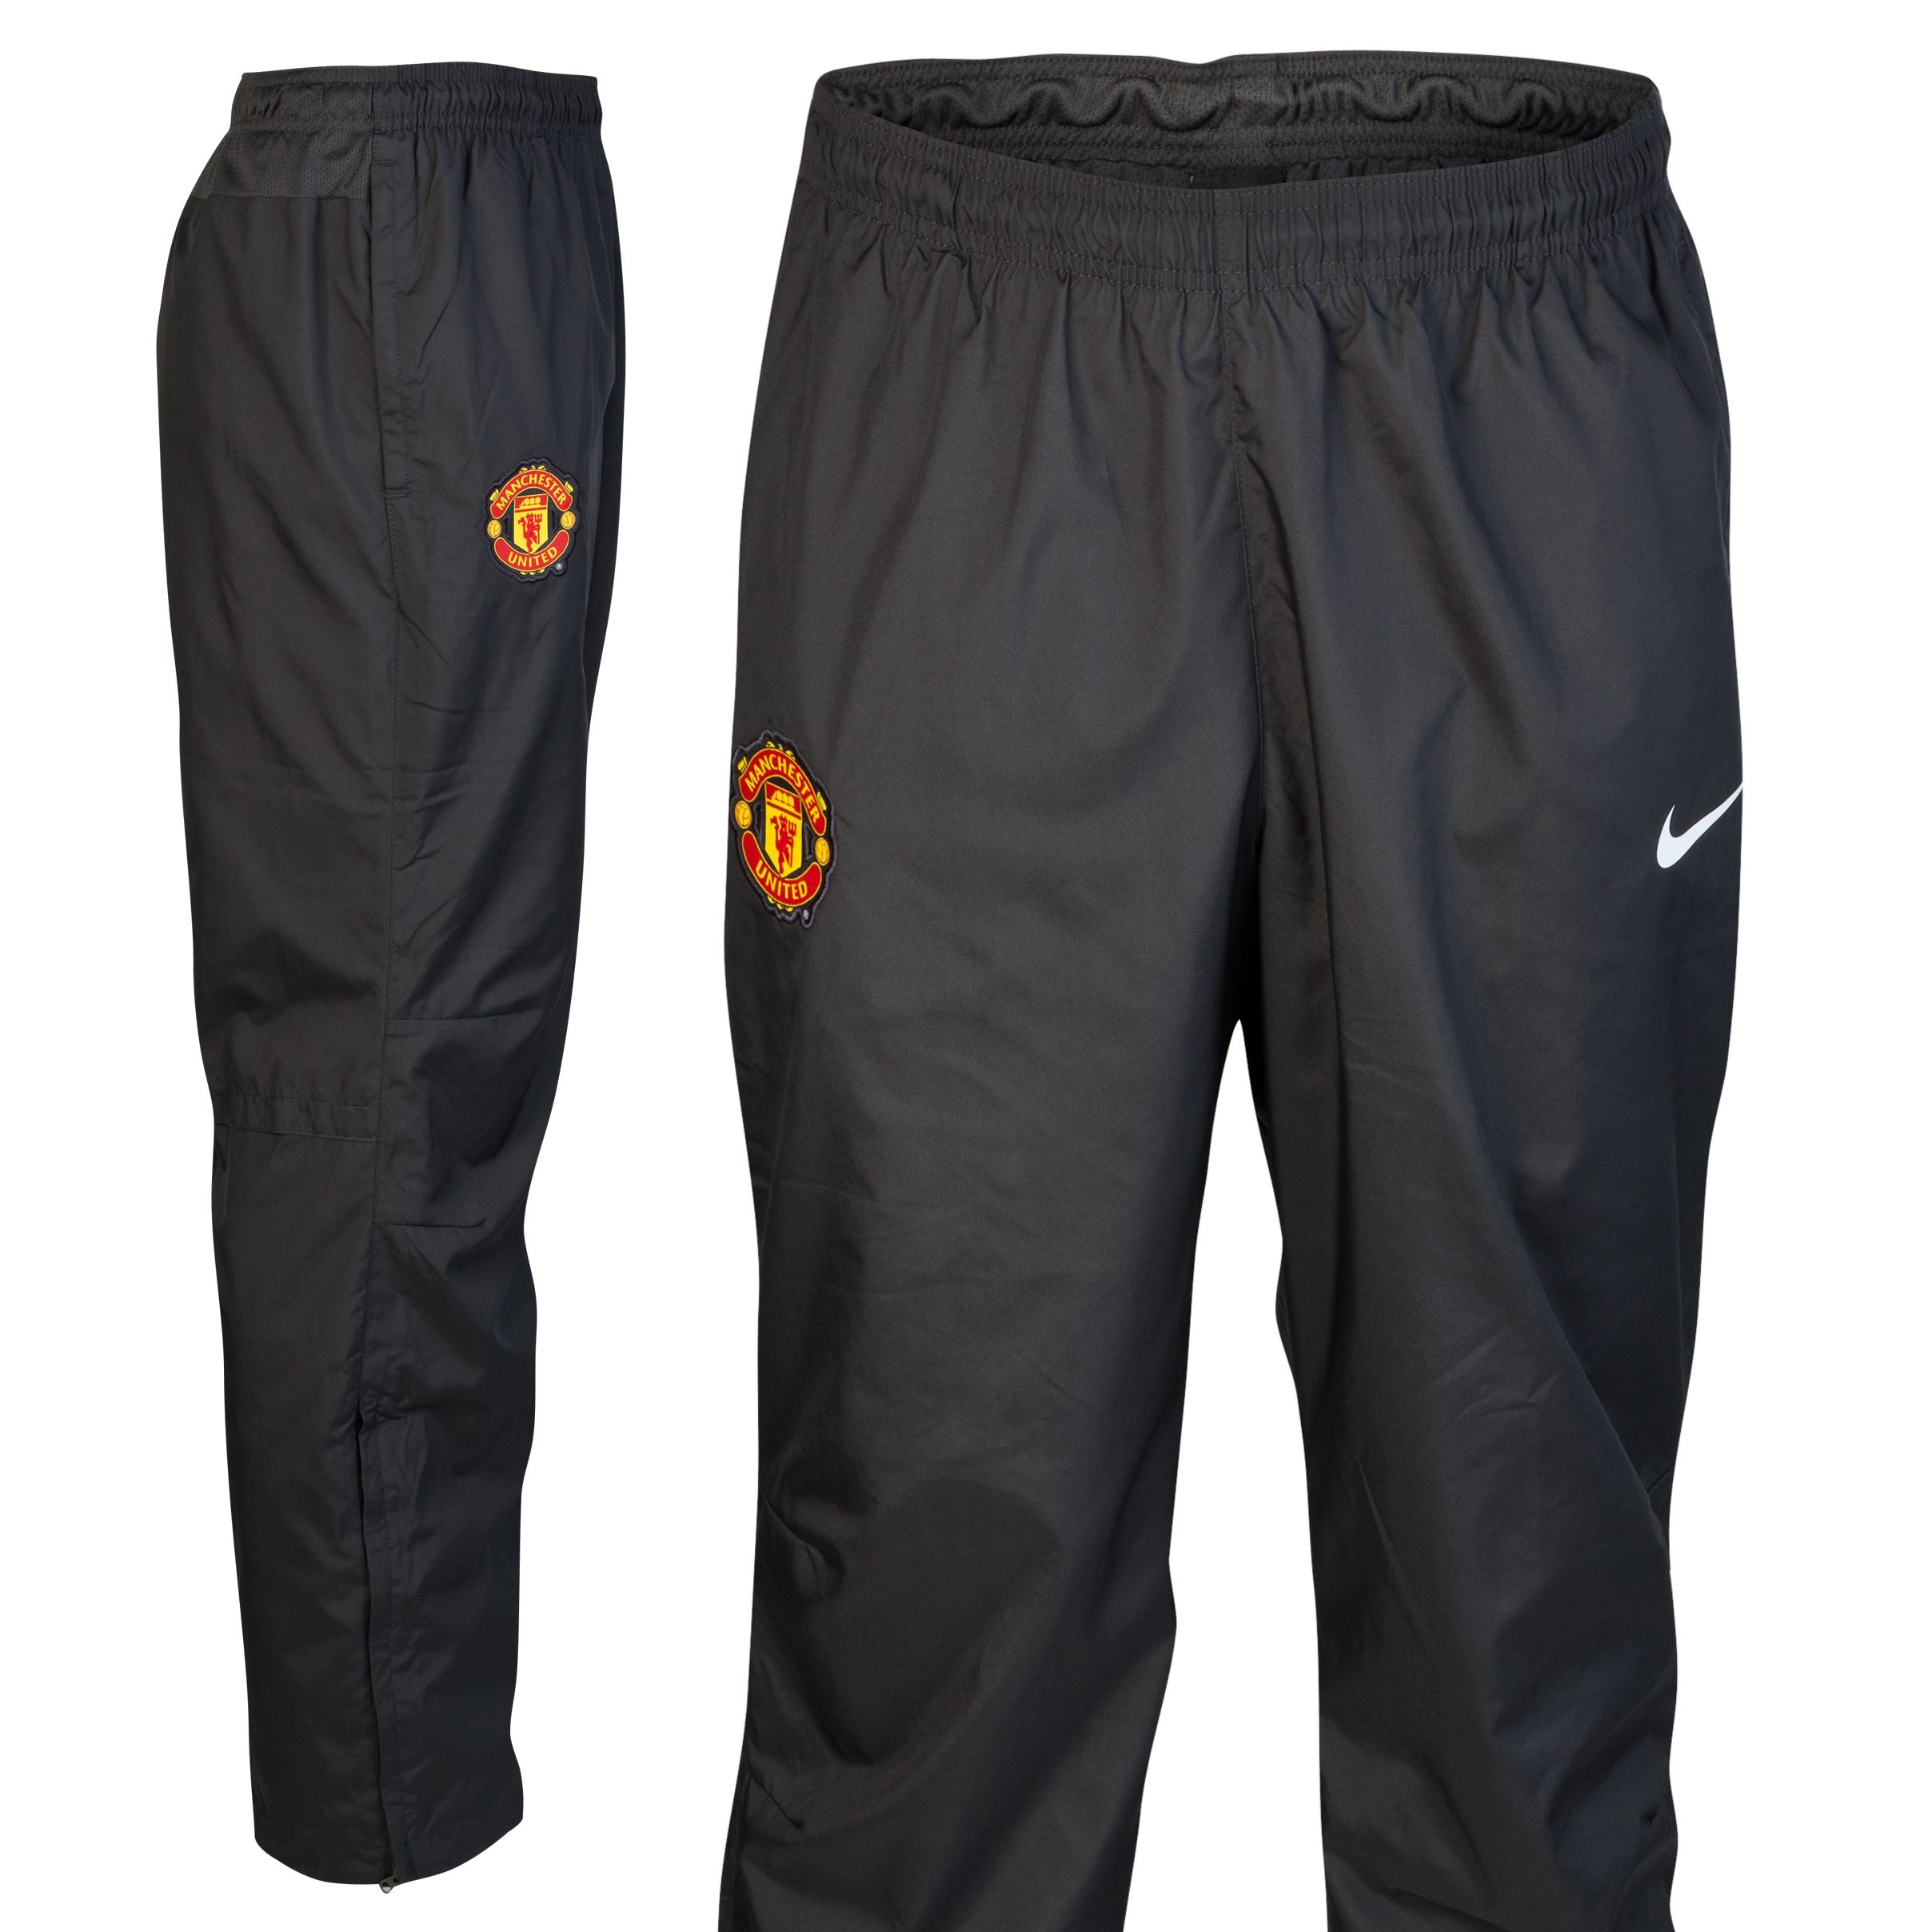 Manchester United Woven Sideline Pant - Anthracite/White